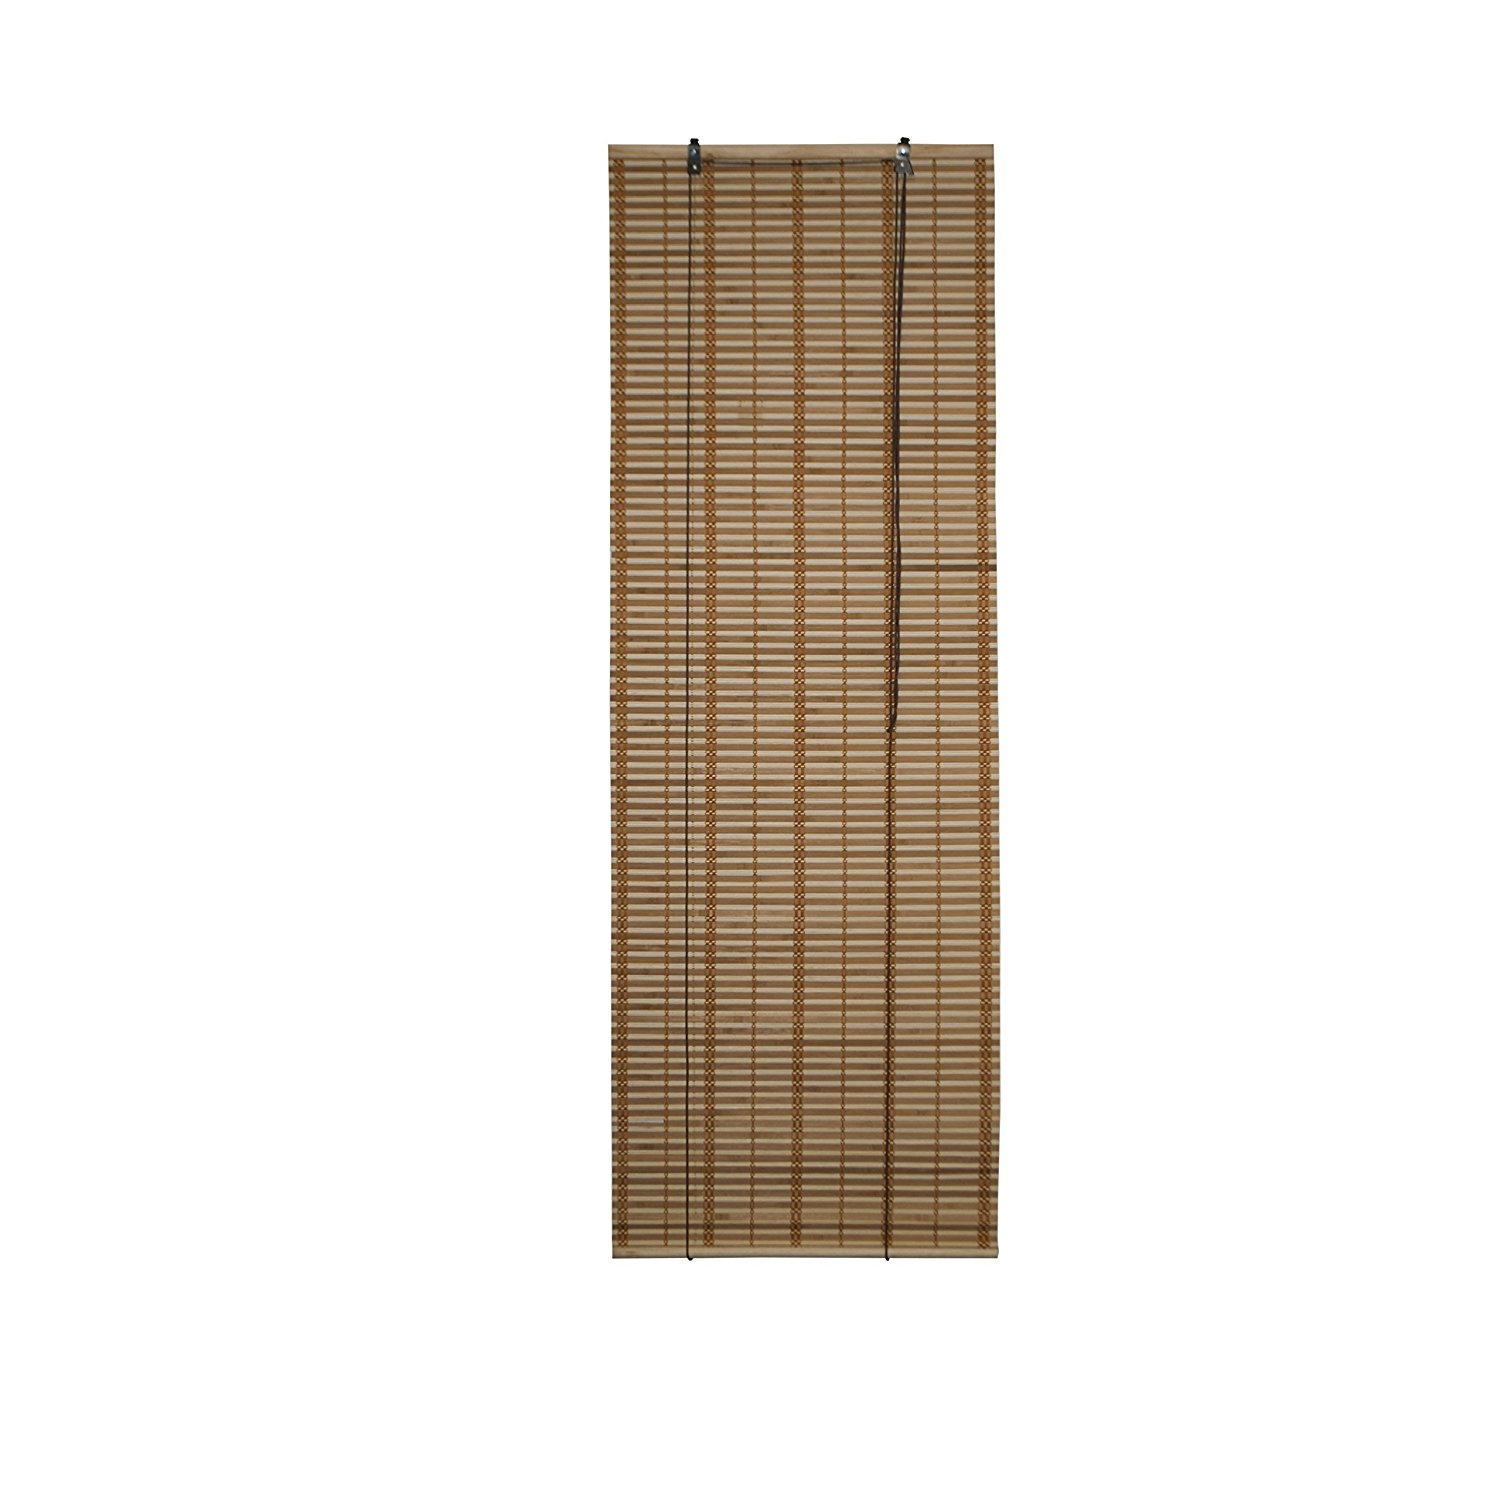 Light Brown Bamboo Midollino Wooden Roll Up Blinds Light Filtering Shades